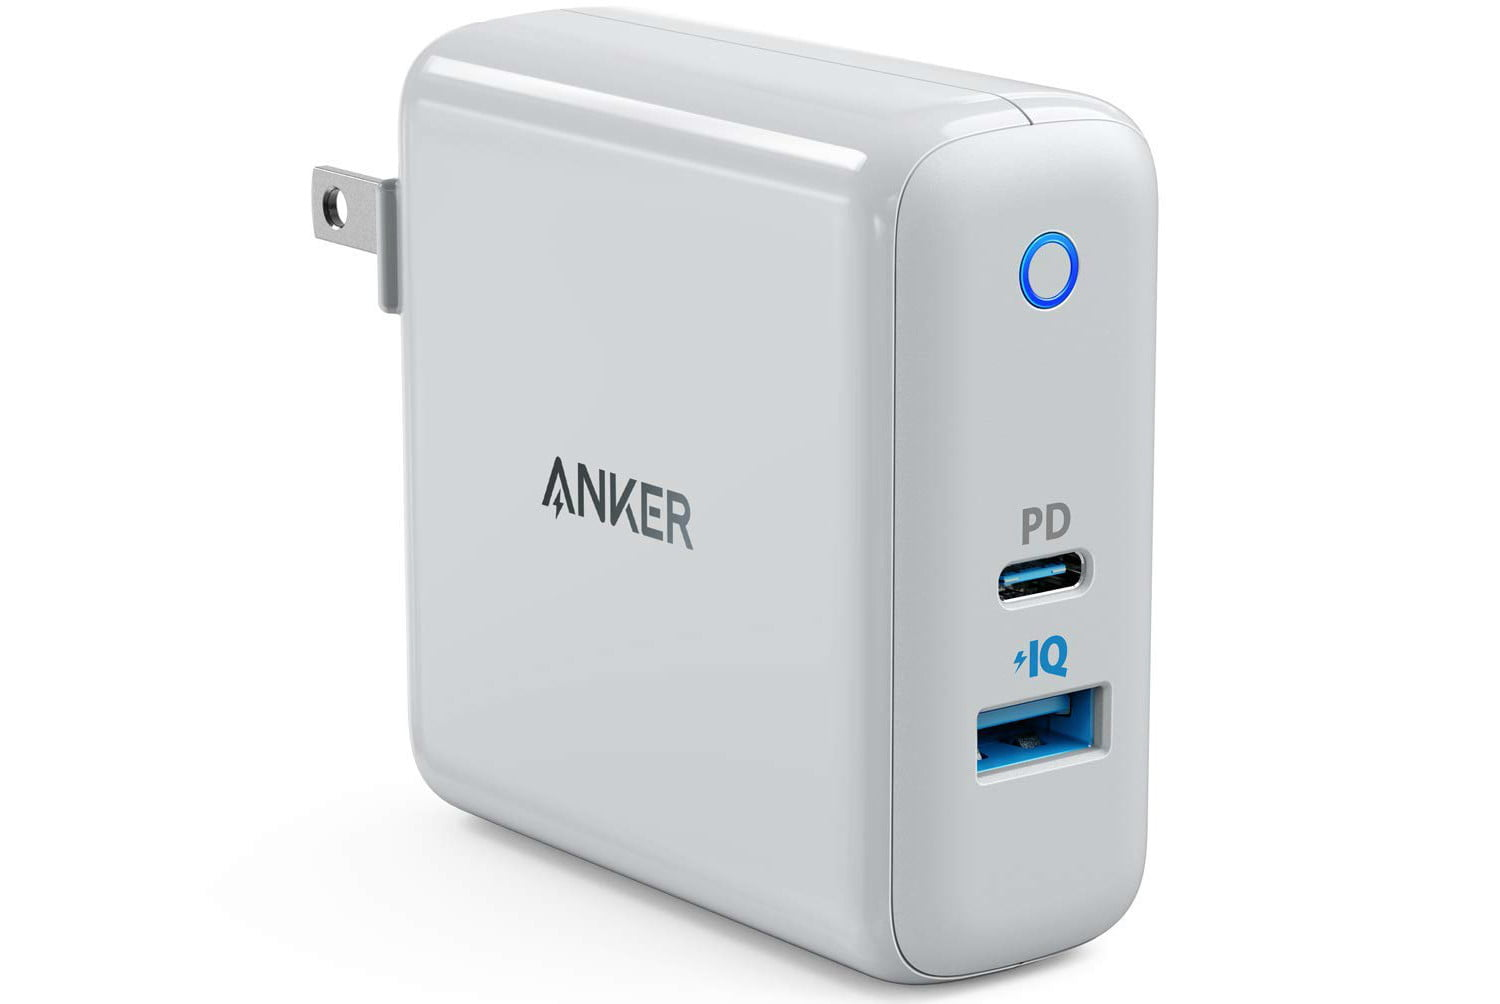 amazon daily deals on anker iphone wireless chargers usb powerport speed  duo wall charger with 30w power delivery port 1